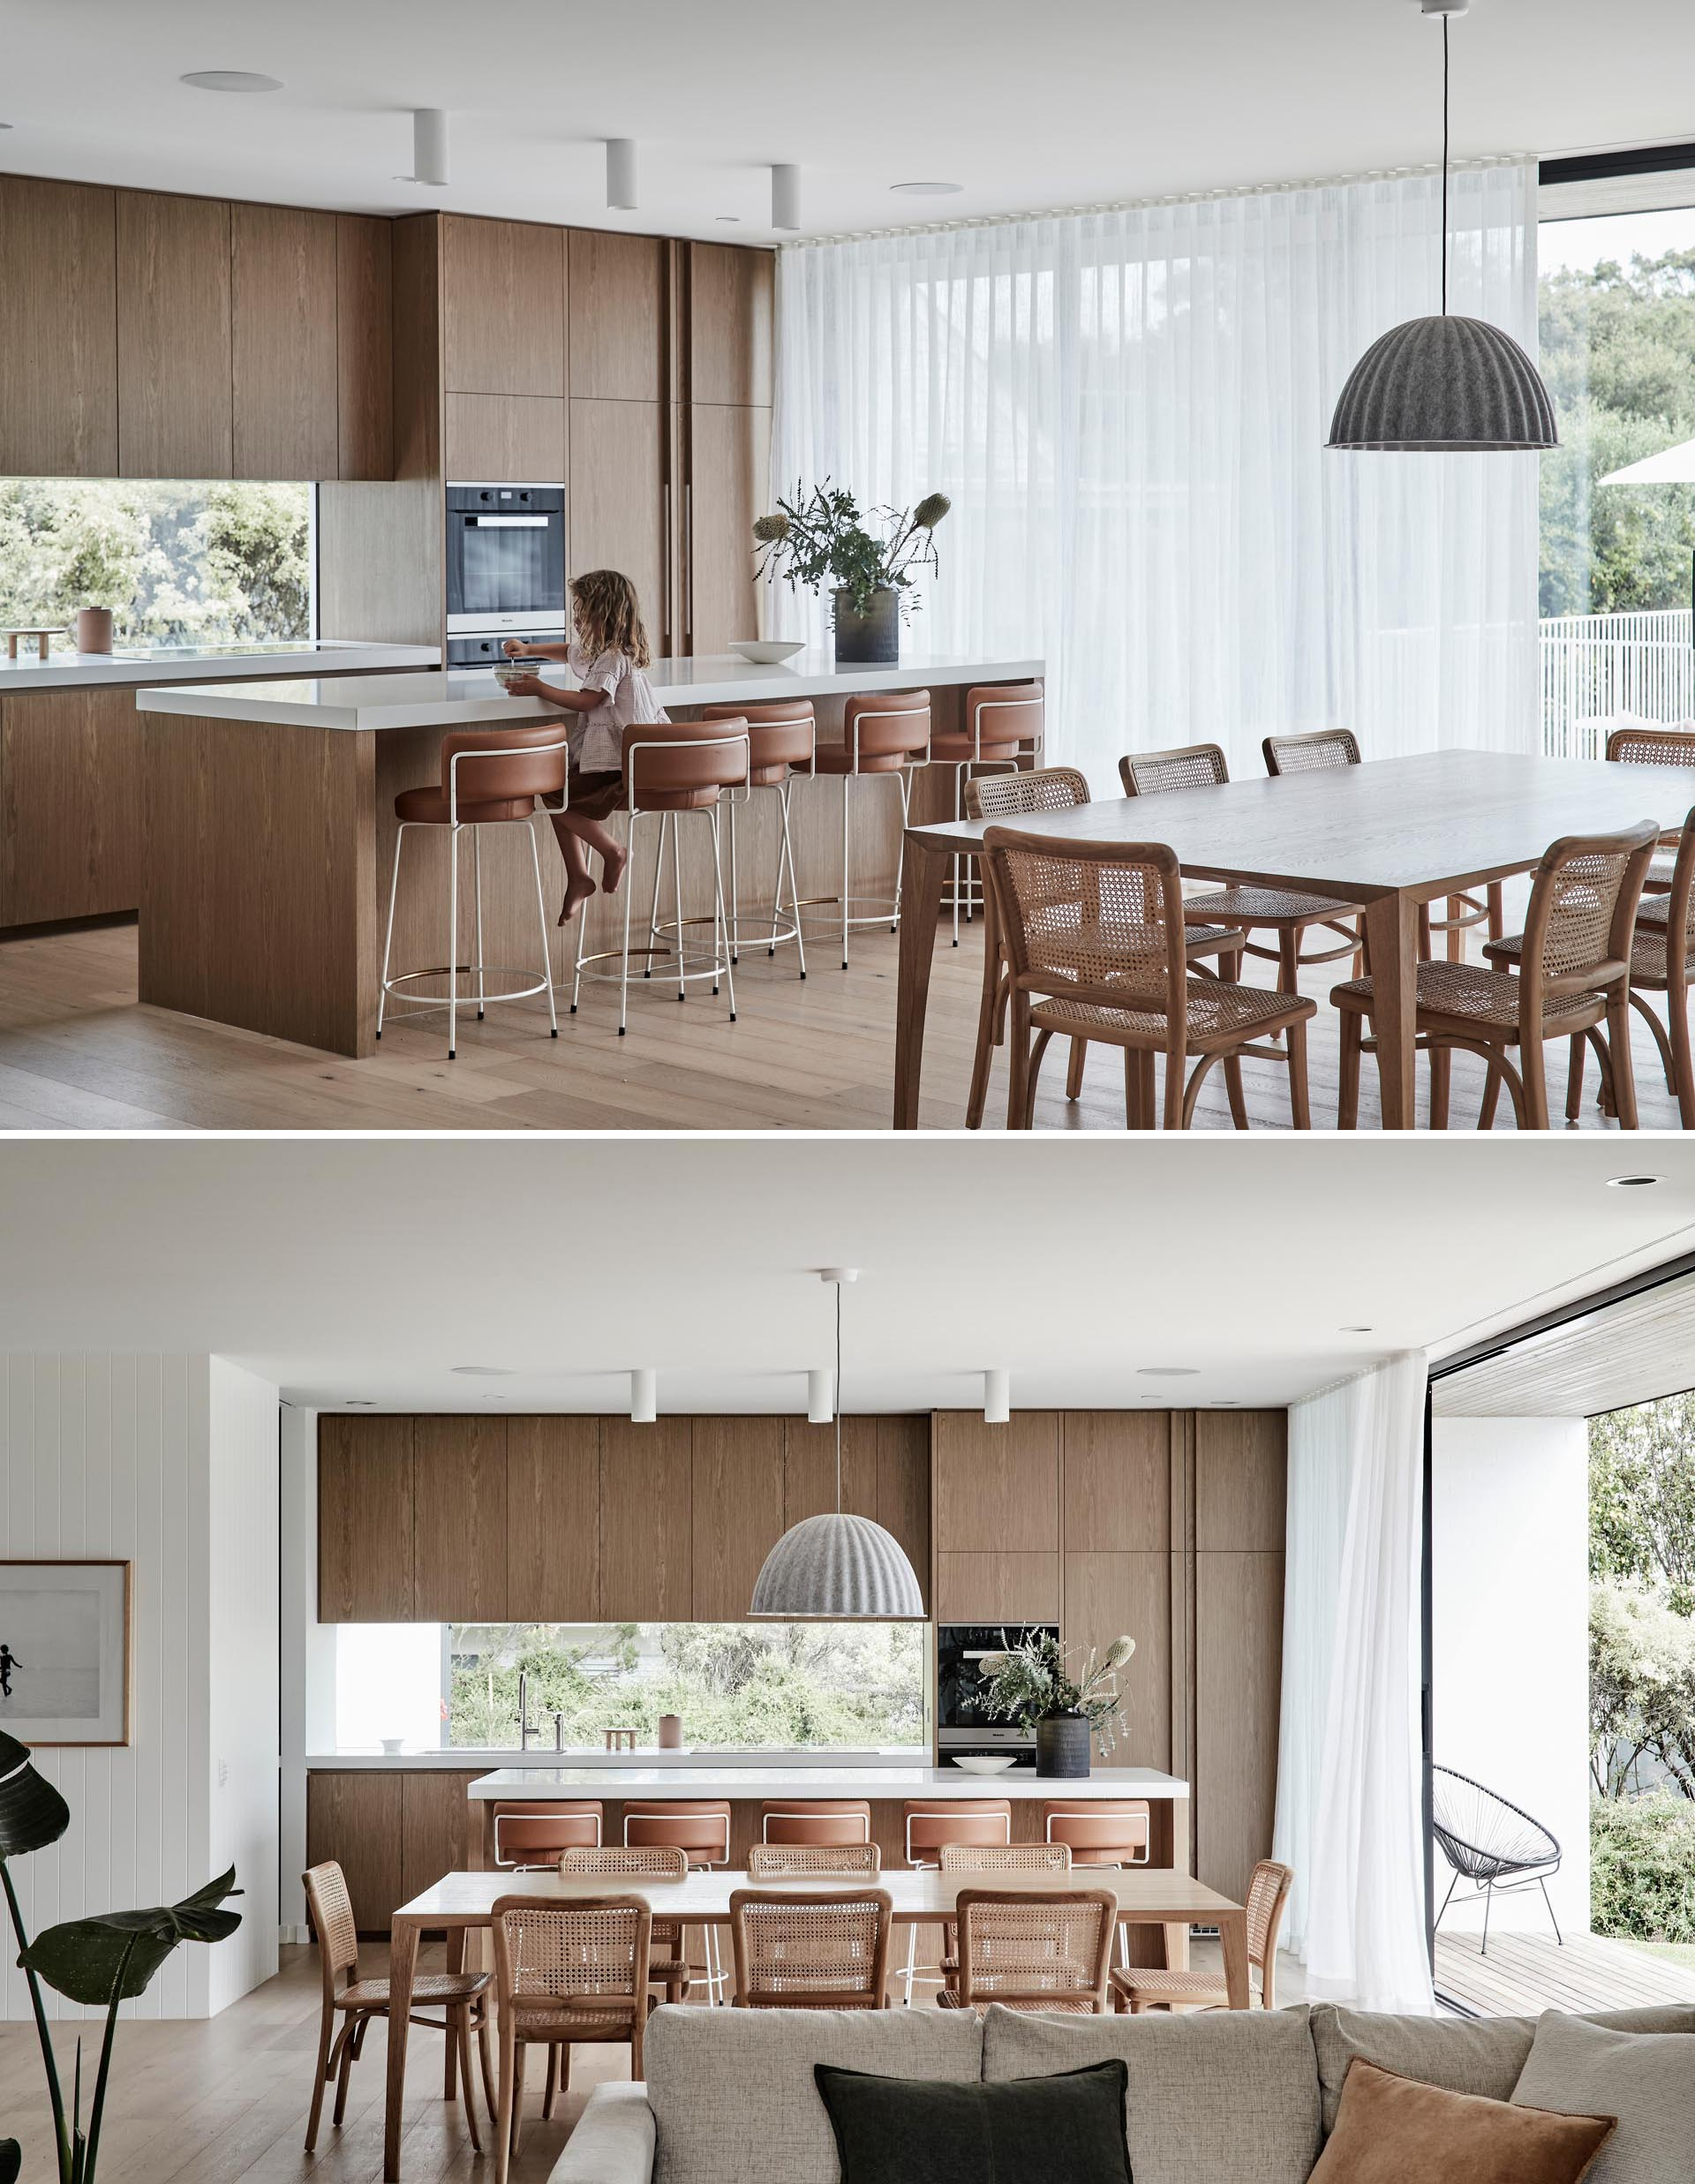 Warm wood dining chairs and kitchen cabinets add a natural element to the interior design of this modern home, while light brown leather stools provide seating at the island.